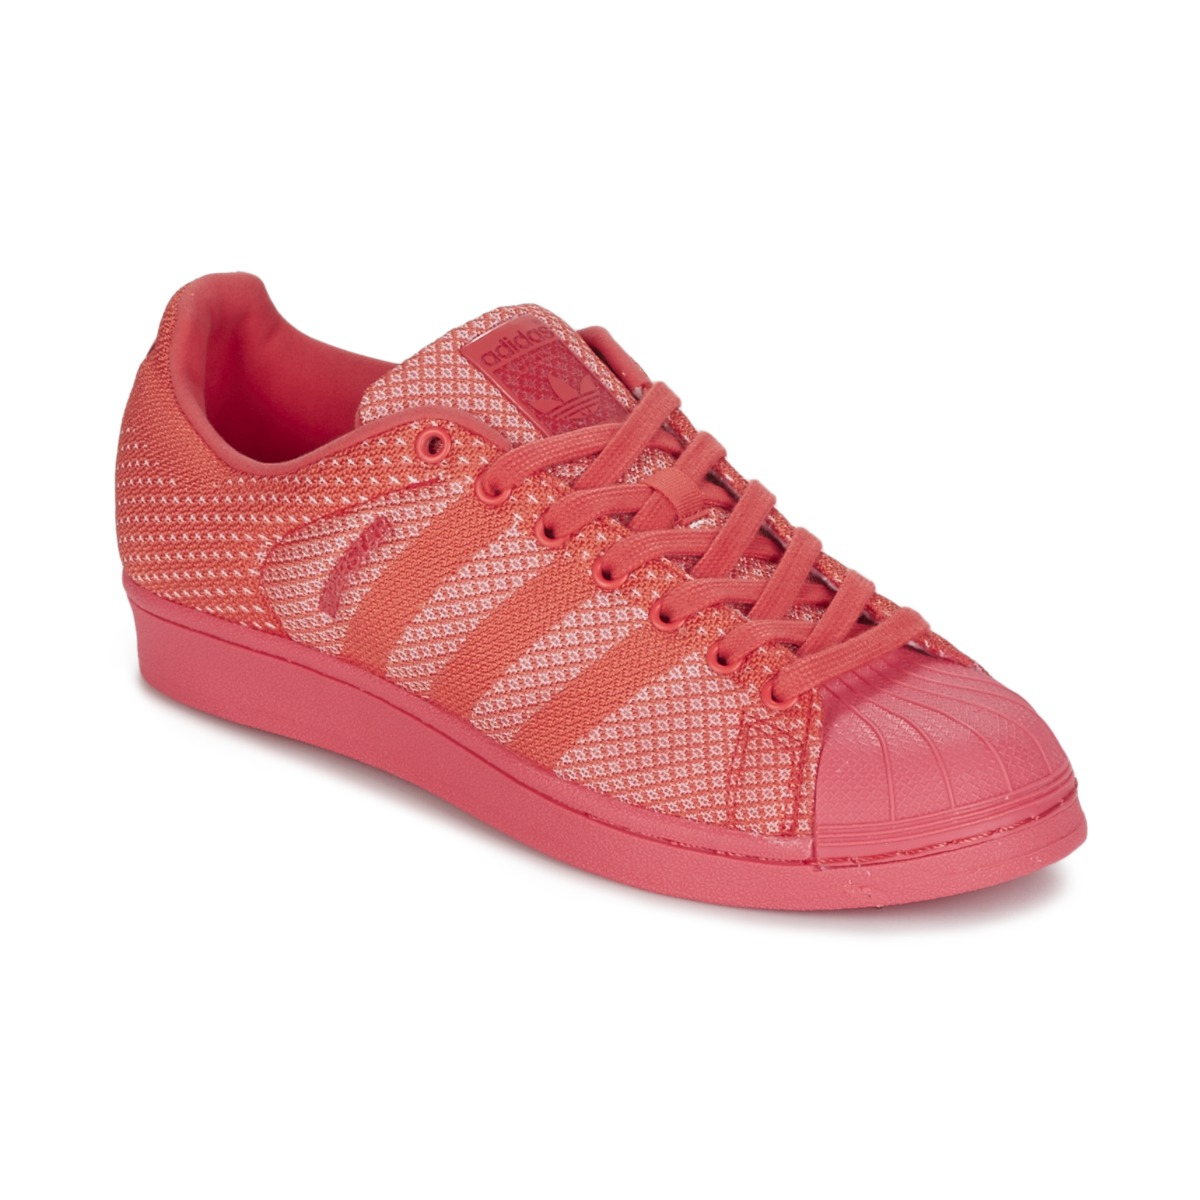 Baskets basses Adidas Originals SUPERSTAR WEAVE Corail, Baskets Femme Spartoo